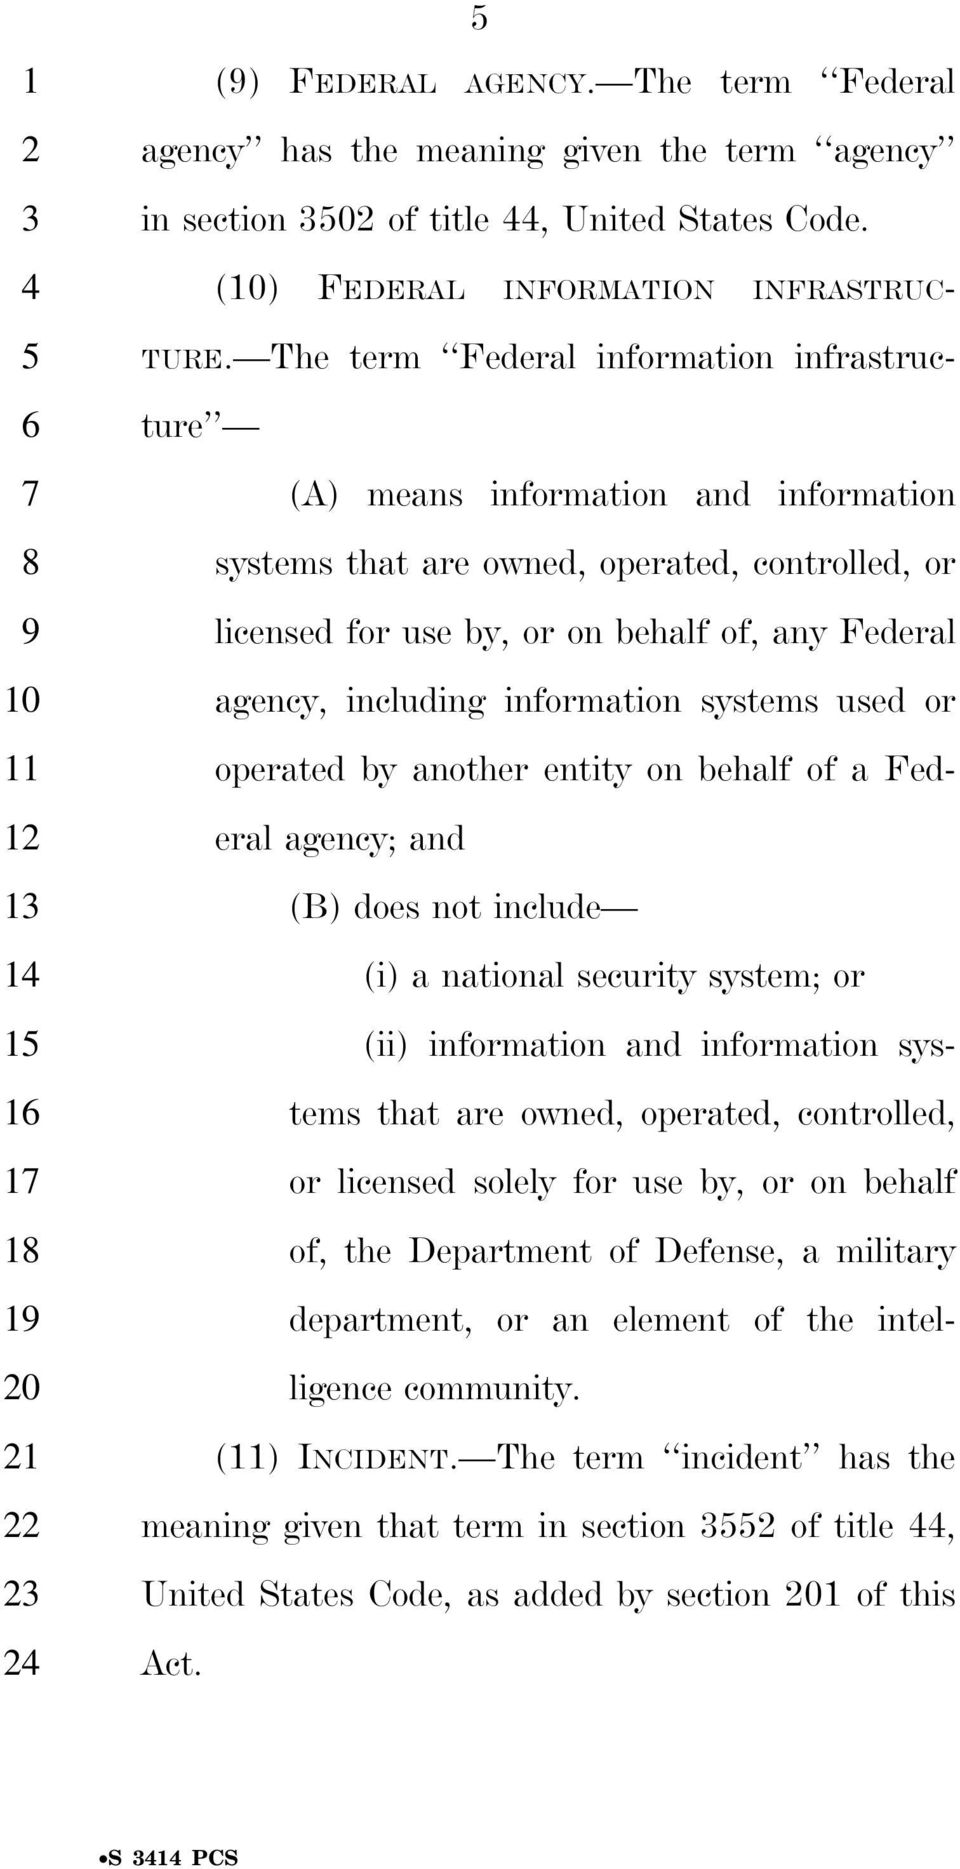 information systems used or operated by another entity on behalf of a Federal agency; and (B) does not include (i) a national security system; or (ii) information and information systems that are